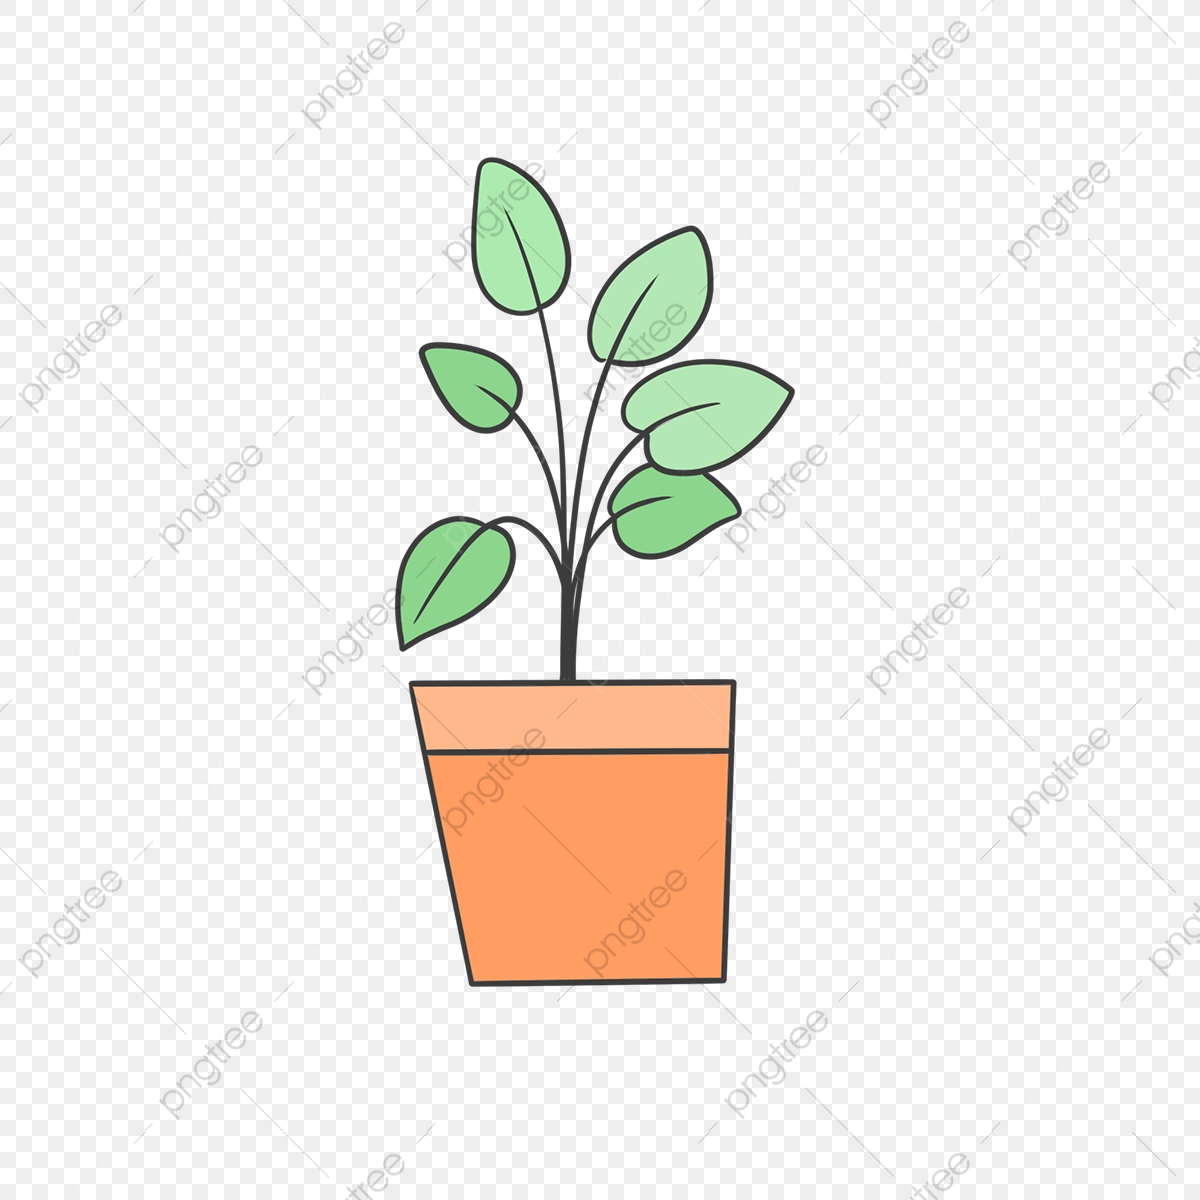 Hand Drawn Green House Plants Drawing Nature Hand Drawn Png Transparent Clipart Image And Psd File For Free Download